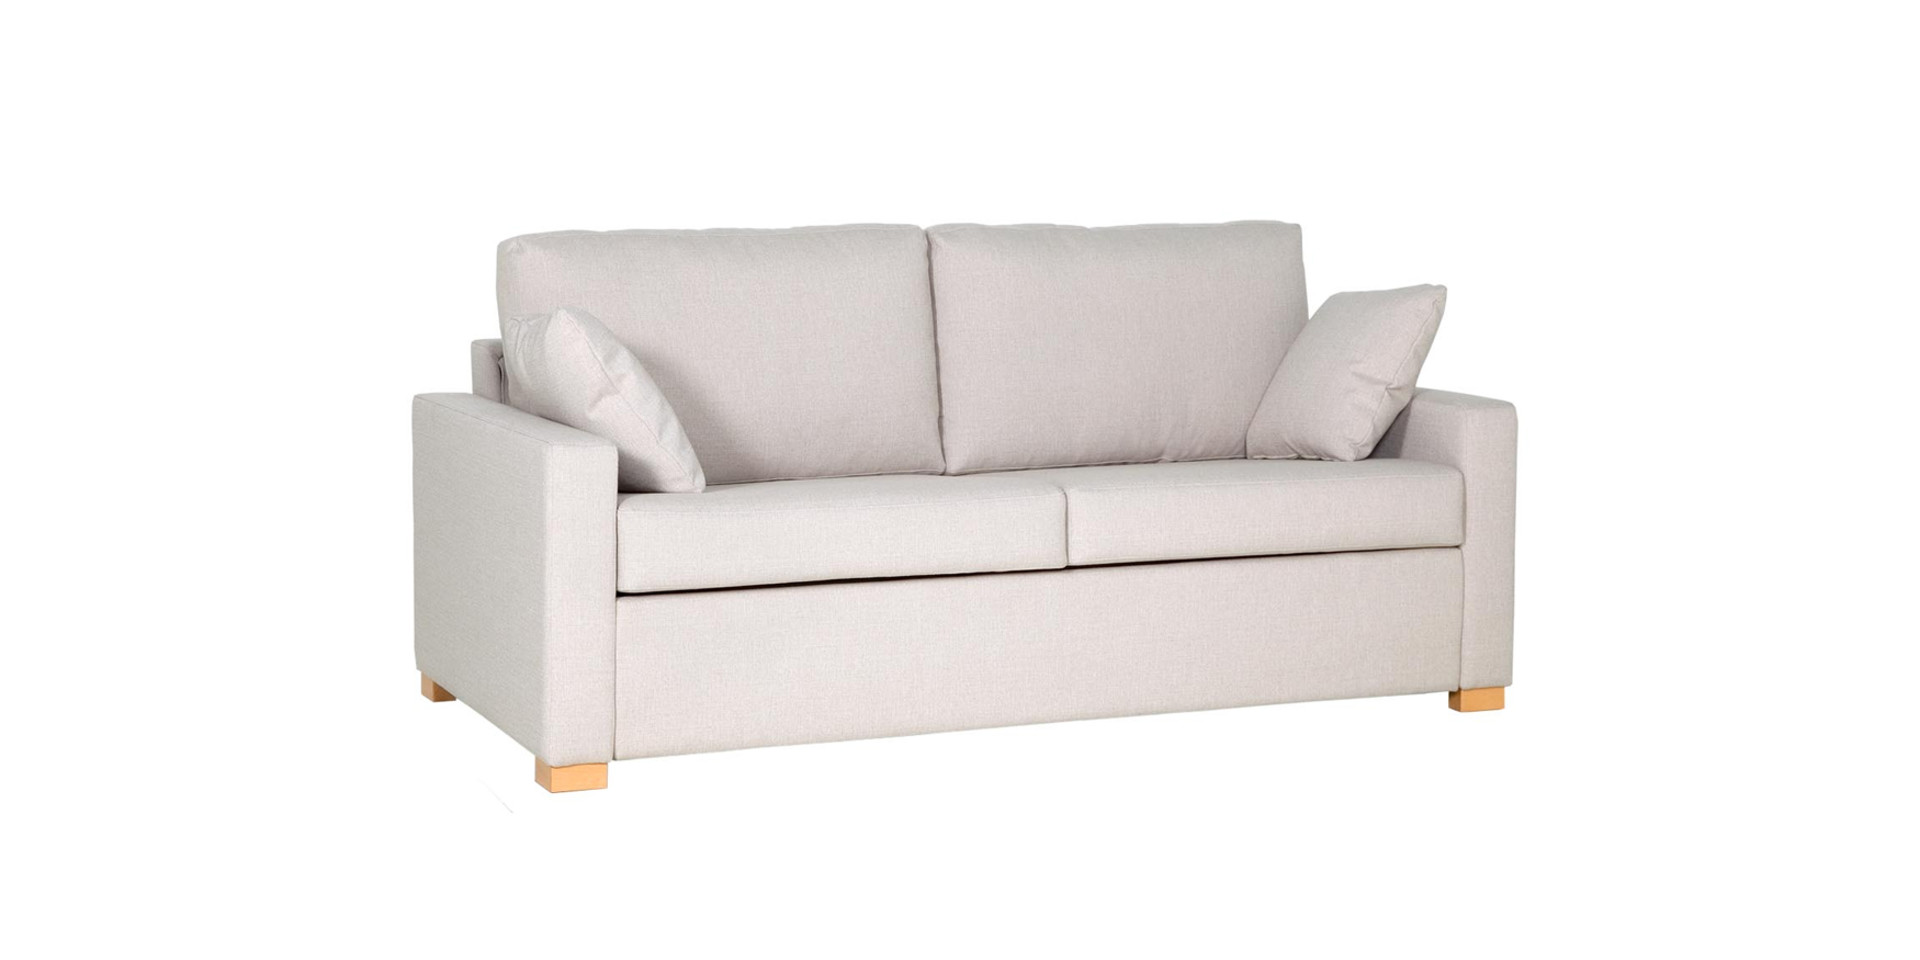 sits-tucson-canape-convertible-sofa_bed3_veraam374_beige_2